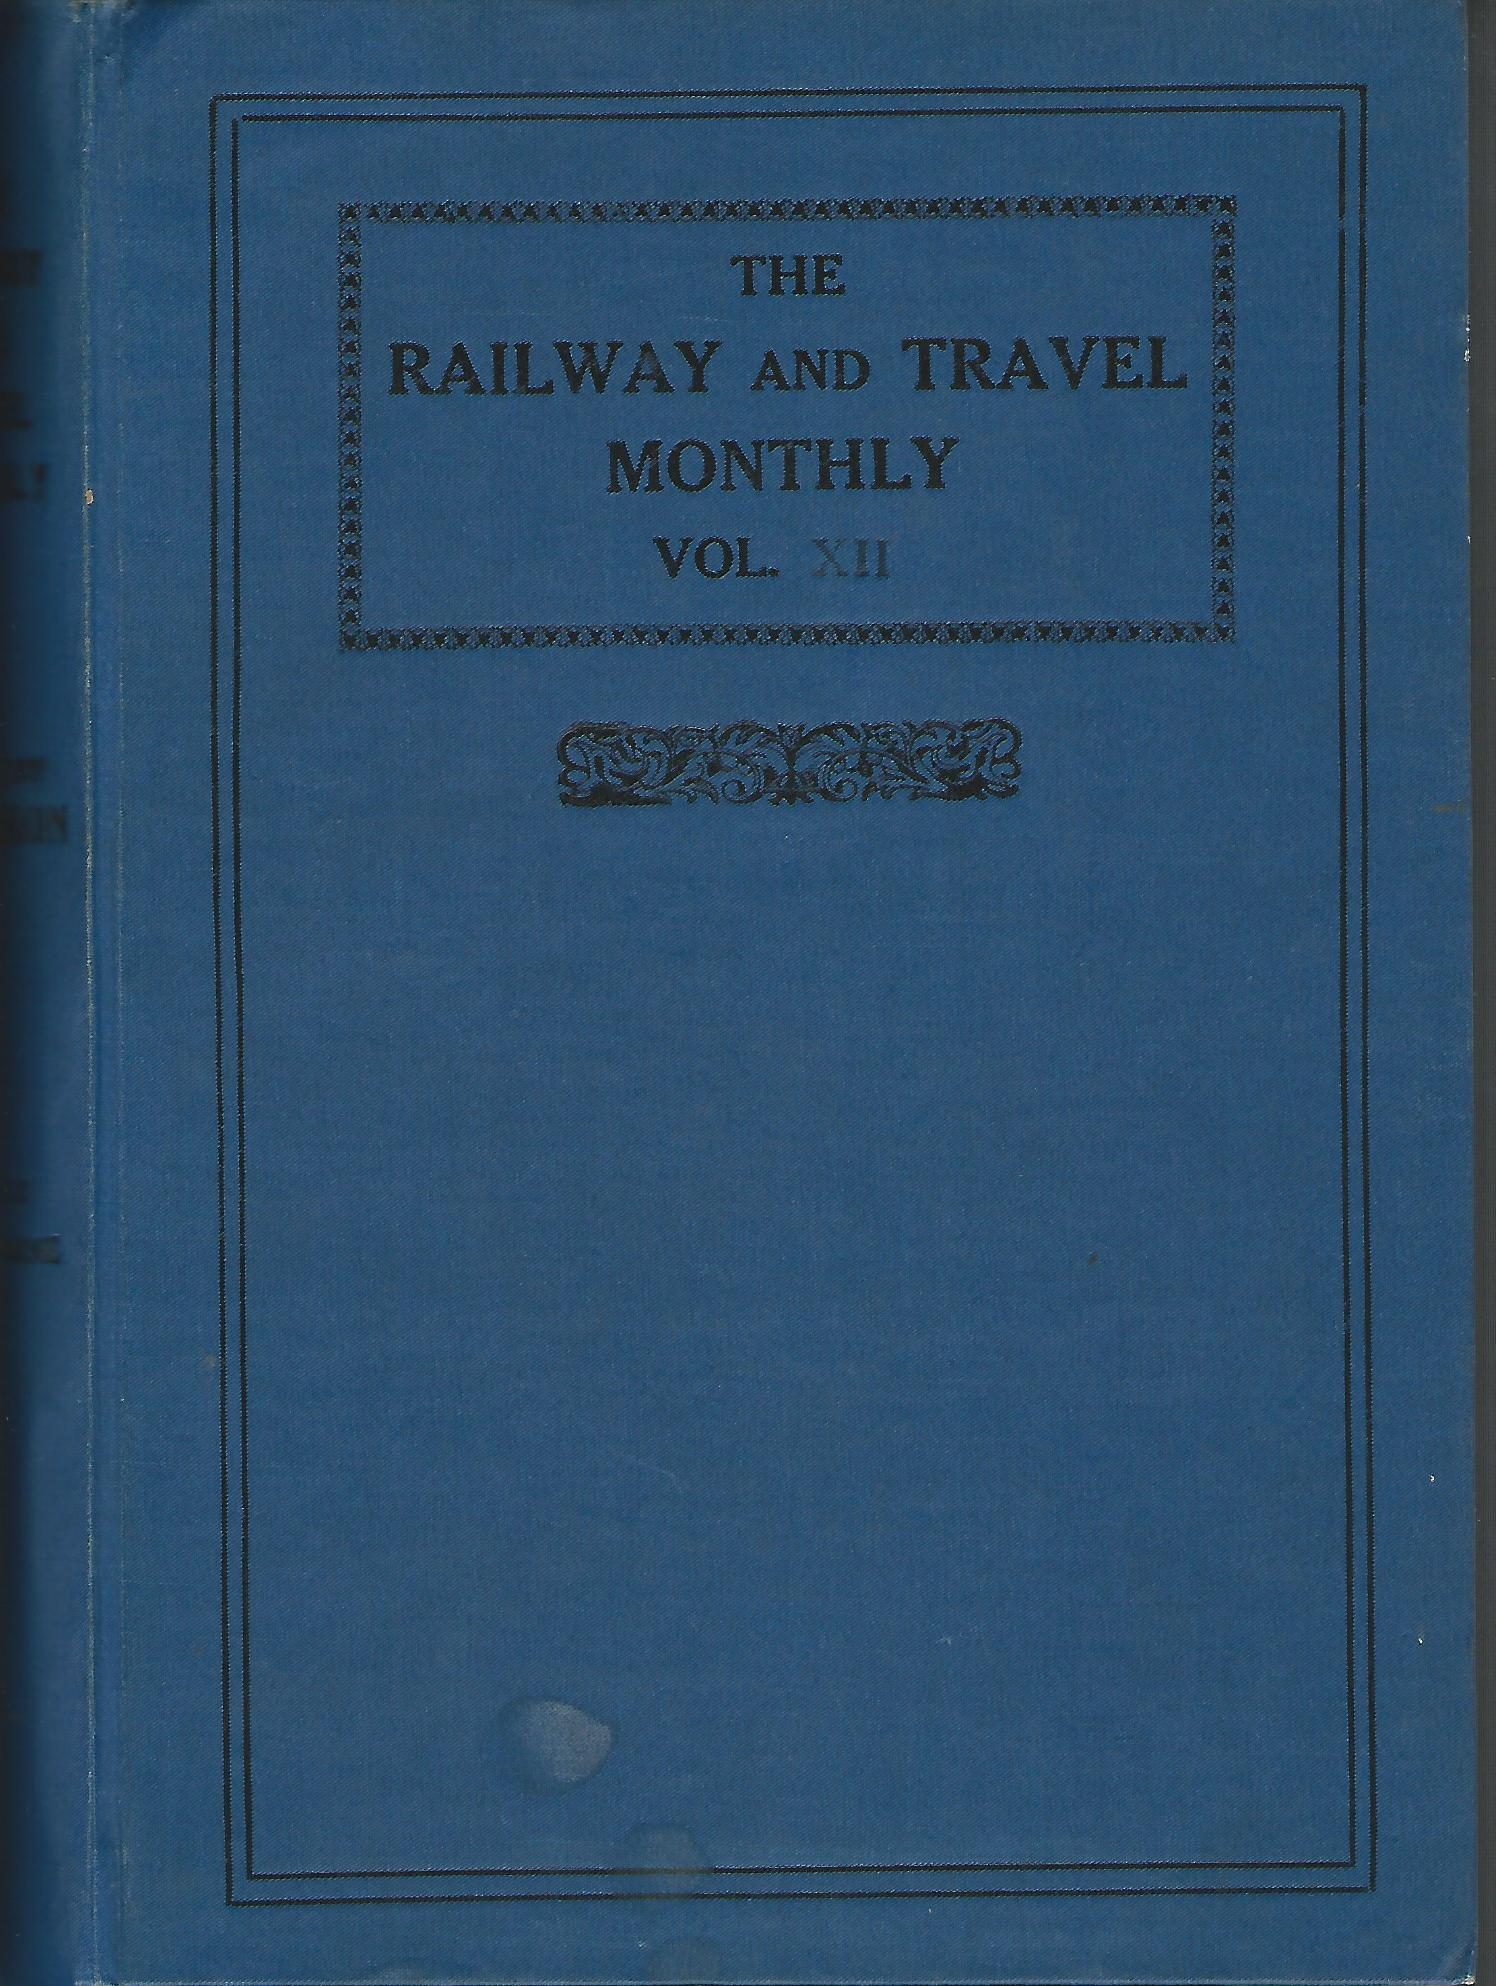 Image for The Railway and Travel Monthly, Vol XII and XIII, 1916.